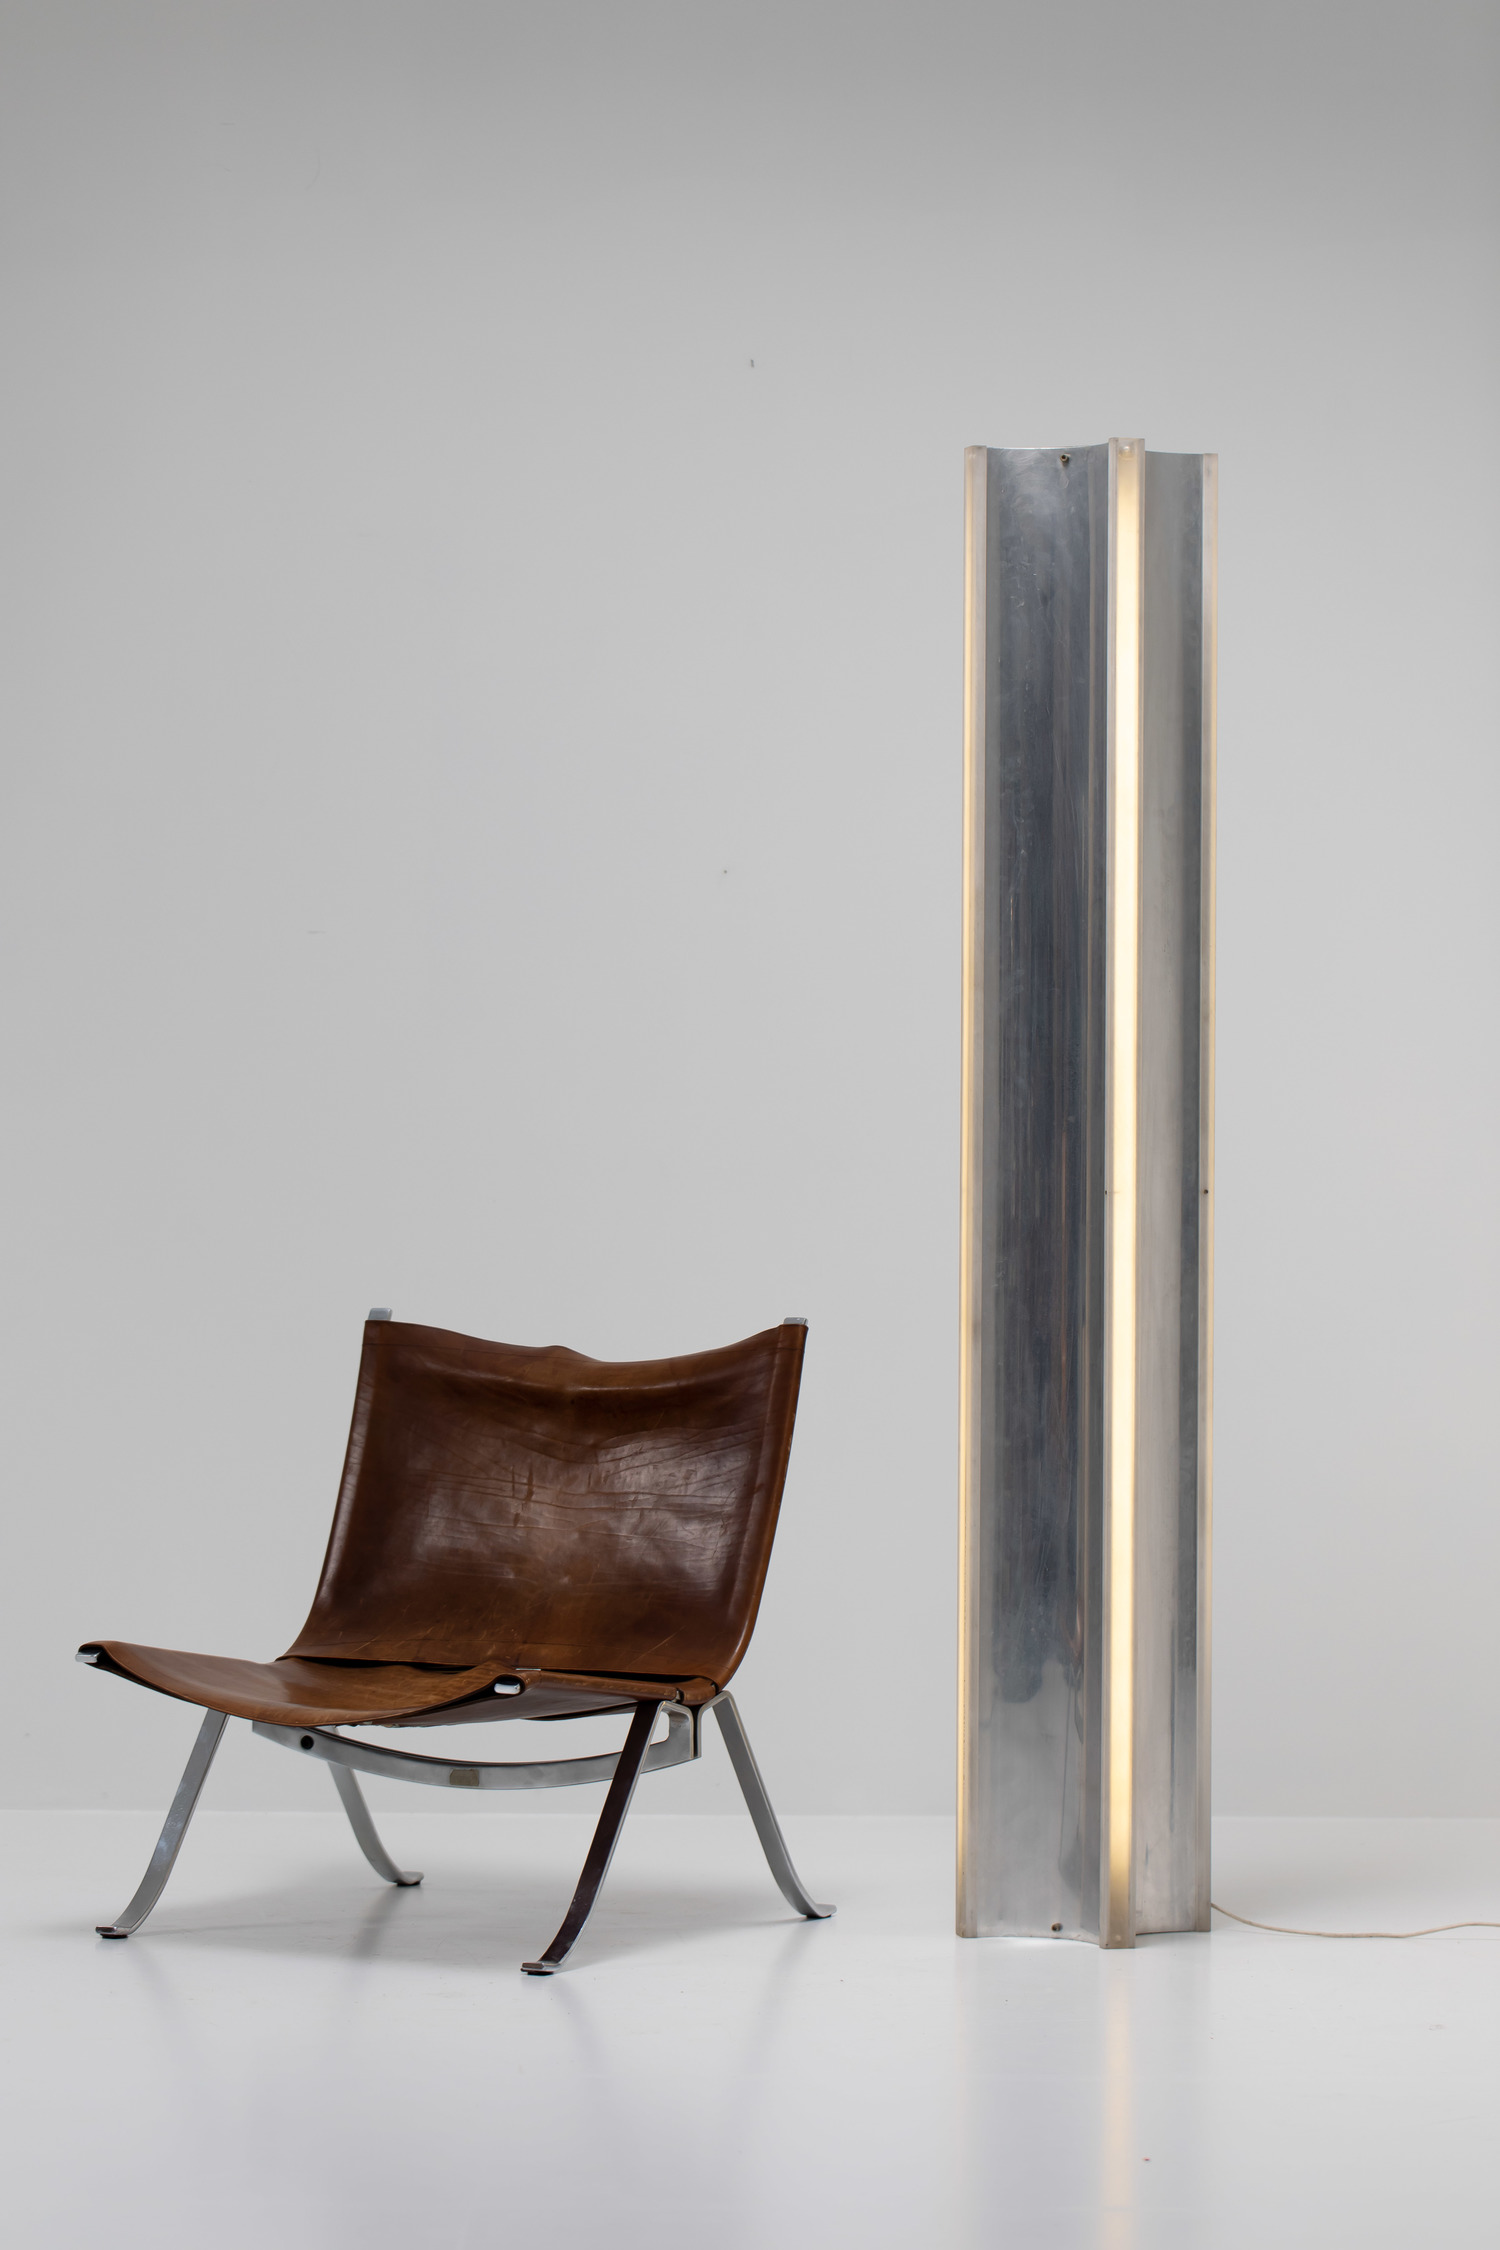 Azimuth floor lamp by Fabrizio Cocchia and Gianfranco Fini for New Lamp